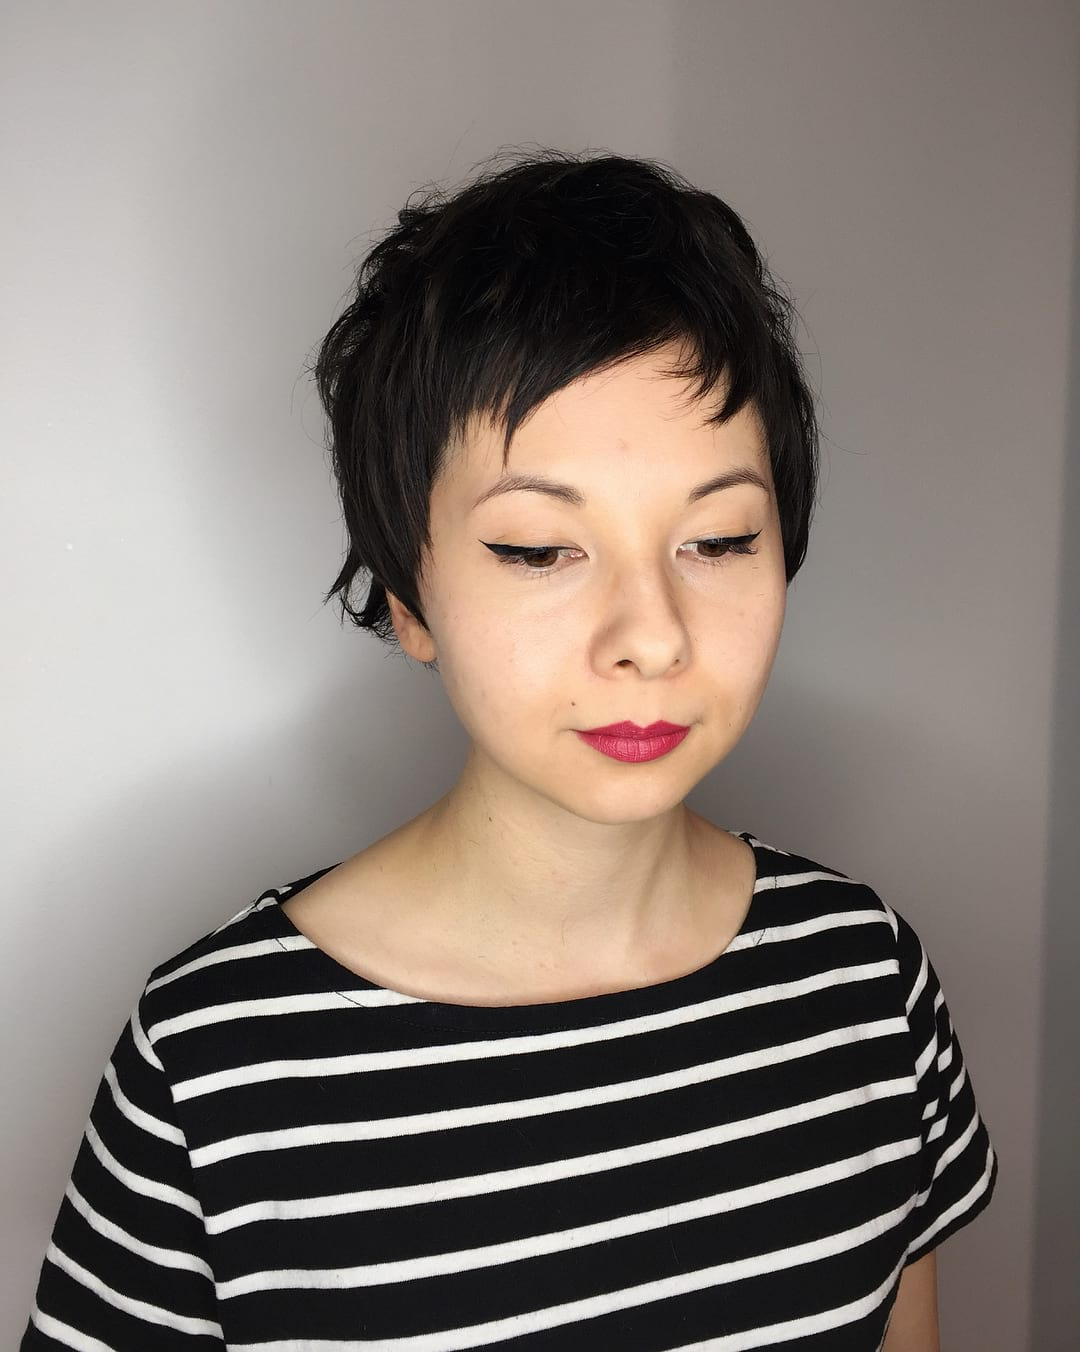 Black Shaggy Crop with Textured Fringe and Baby Bangs Short Hairstyle